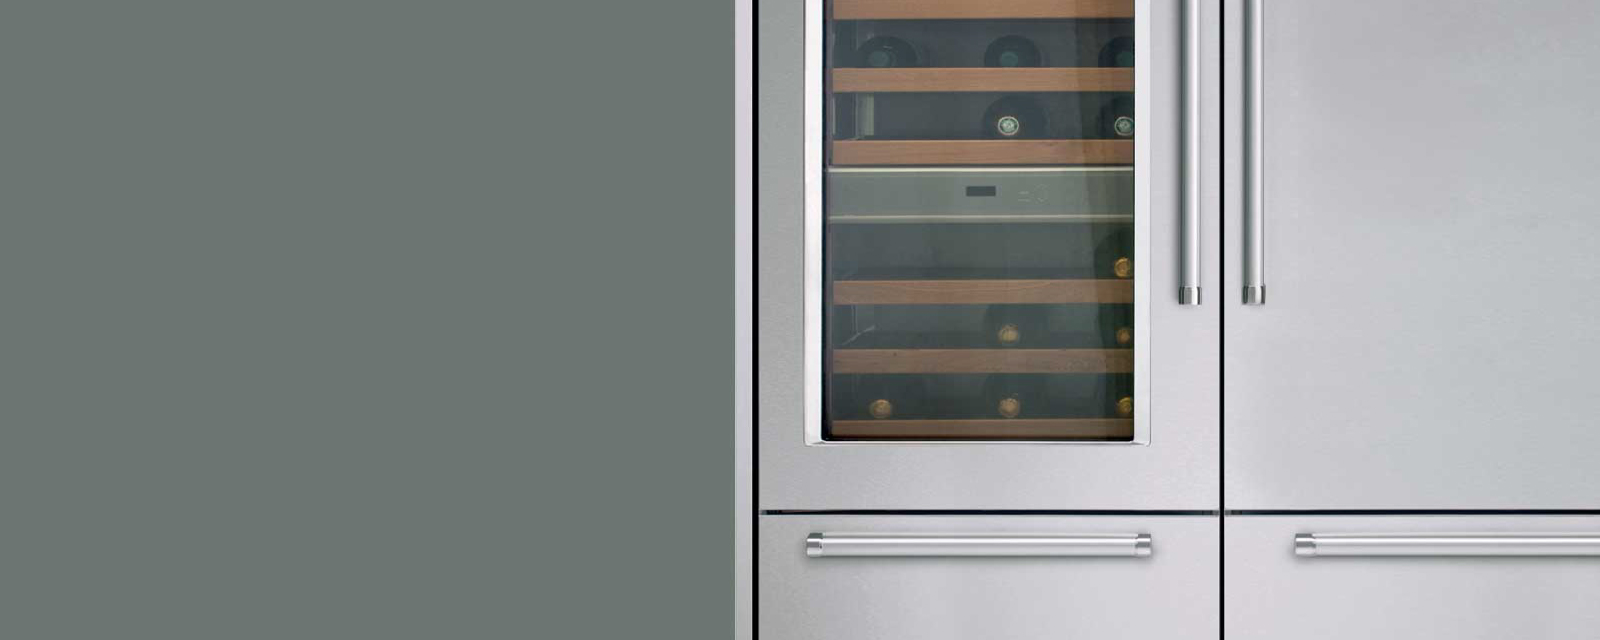 Vertigo Collection 90 Cm Integrated Wine Cellar Kczwx 20900l Kitchenaid Coffee Maker Wiring Diagram Vertigos Total No Frost System Is Completely Automatic So You Longer Need To Defrost The Freezer Compartment Also Rapidly Cools